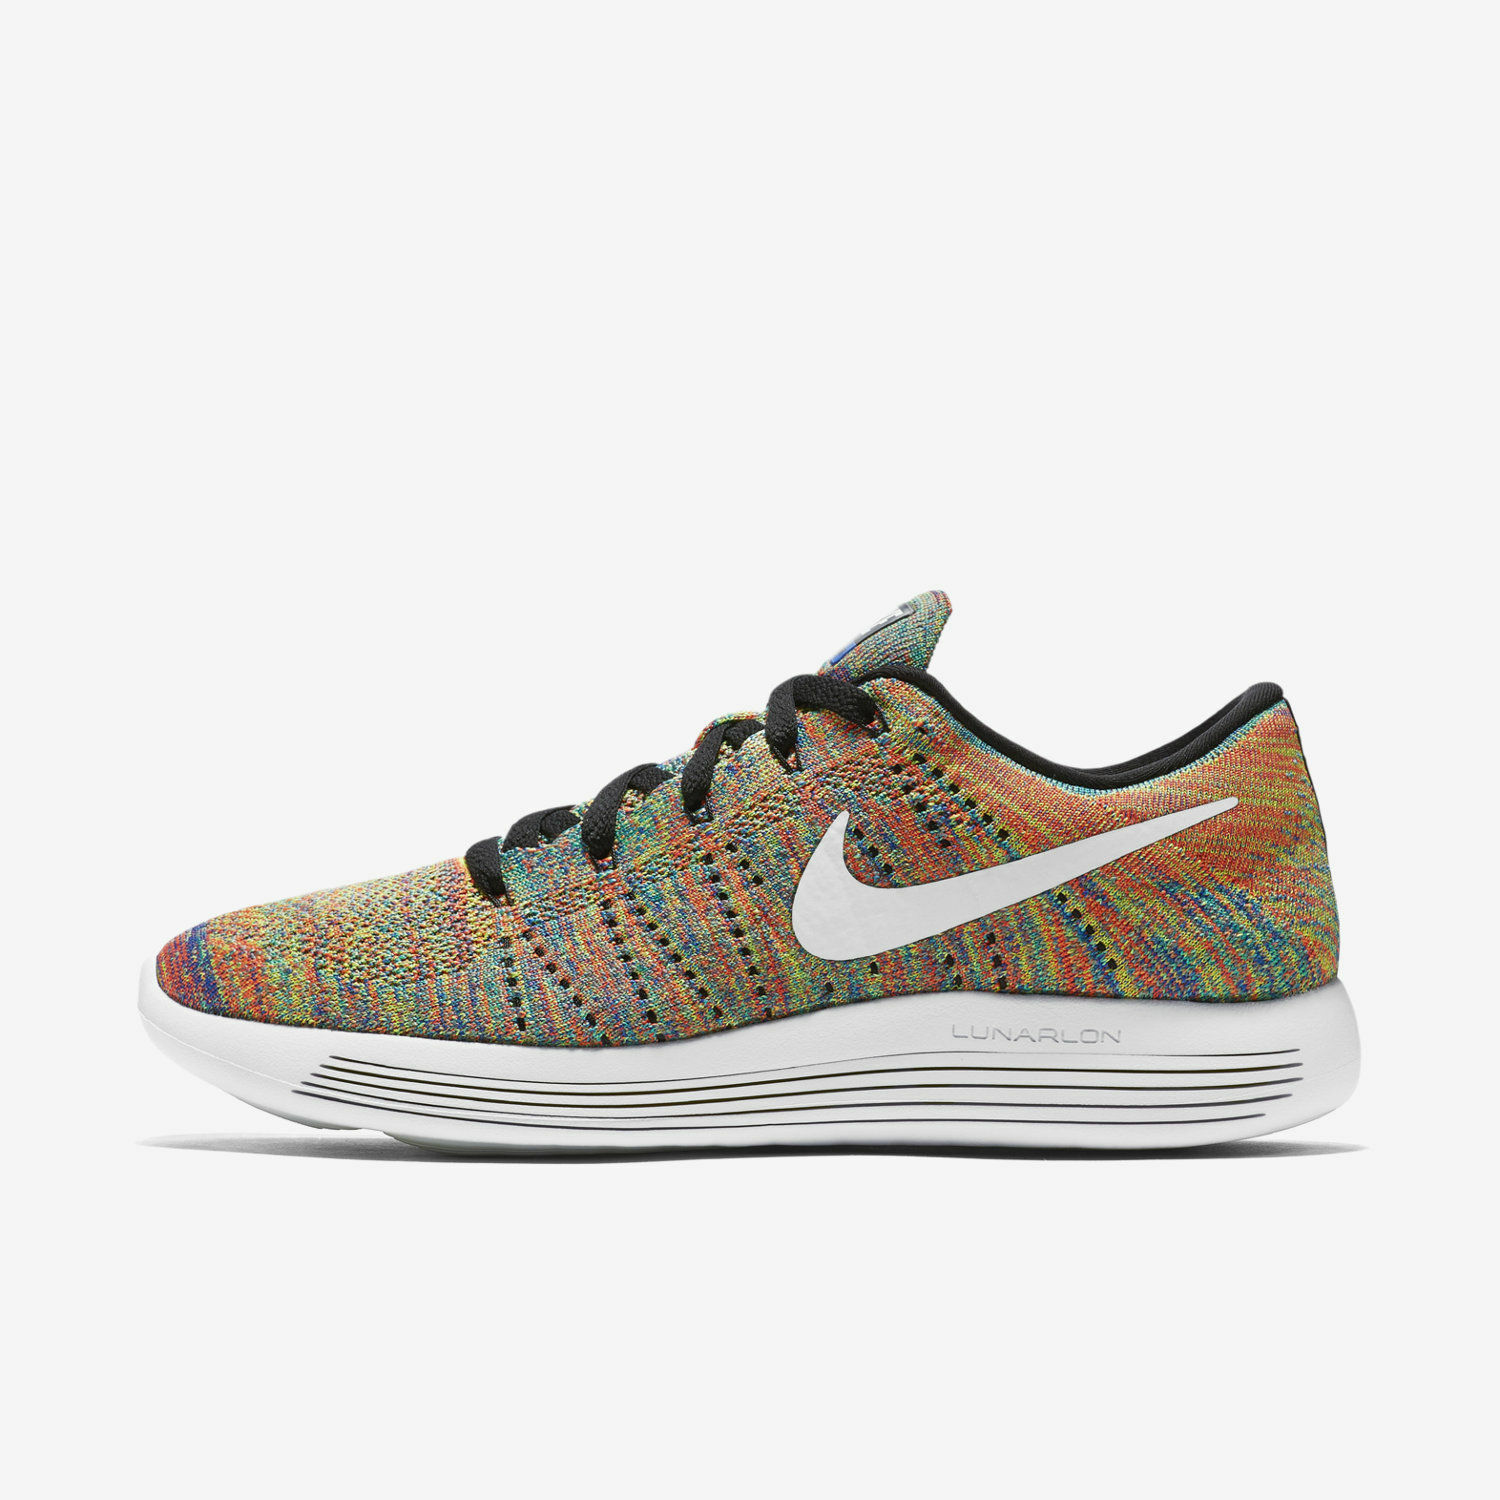 Nike LunarEpic Low Flyknit Multicolor Rainbow Sample Men's Size 10 843764 004